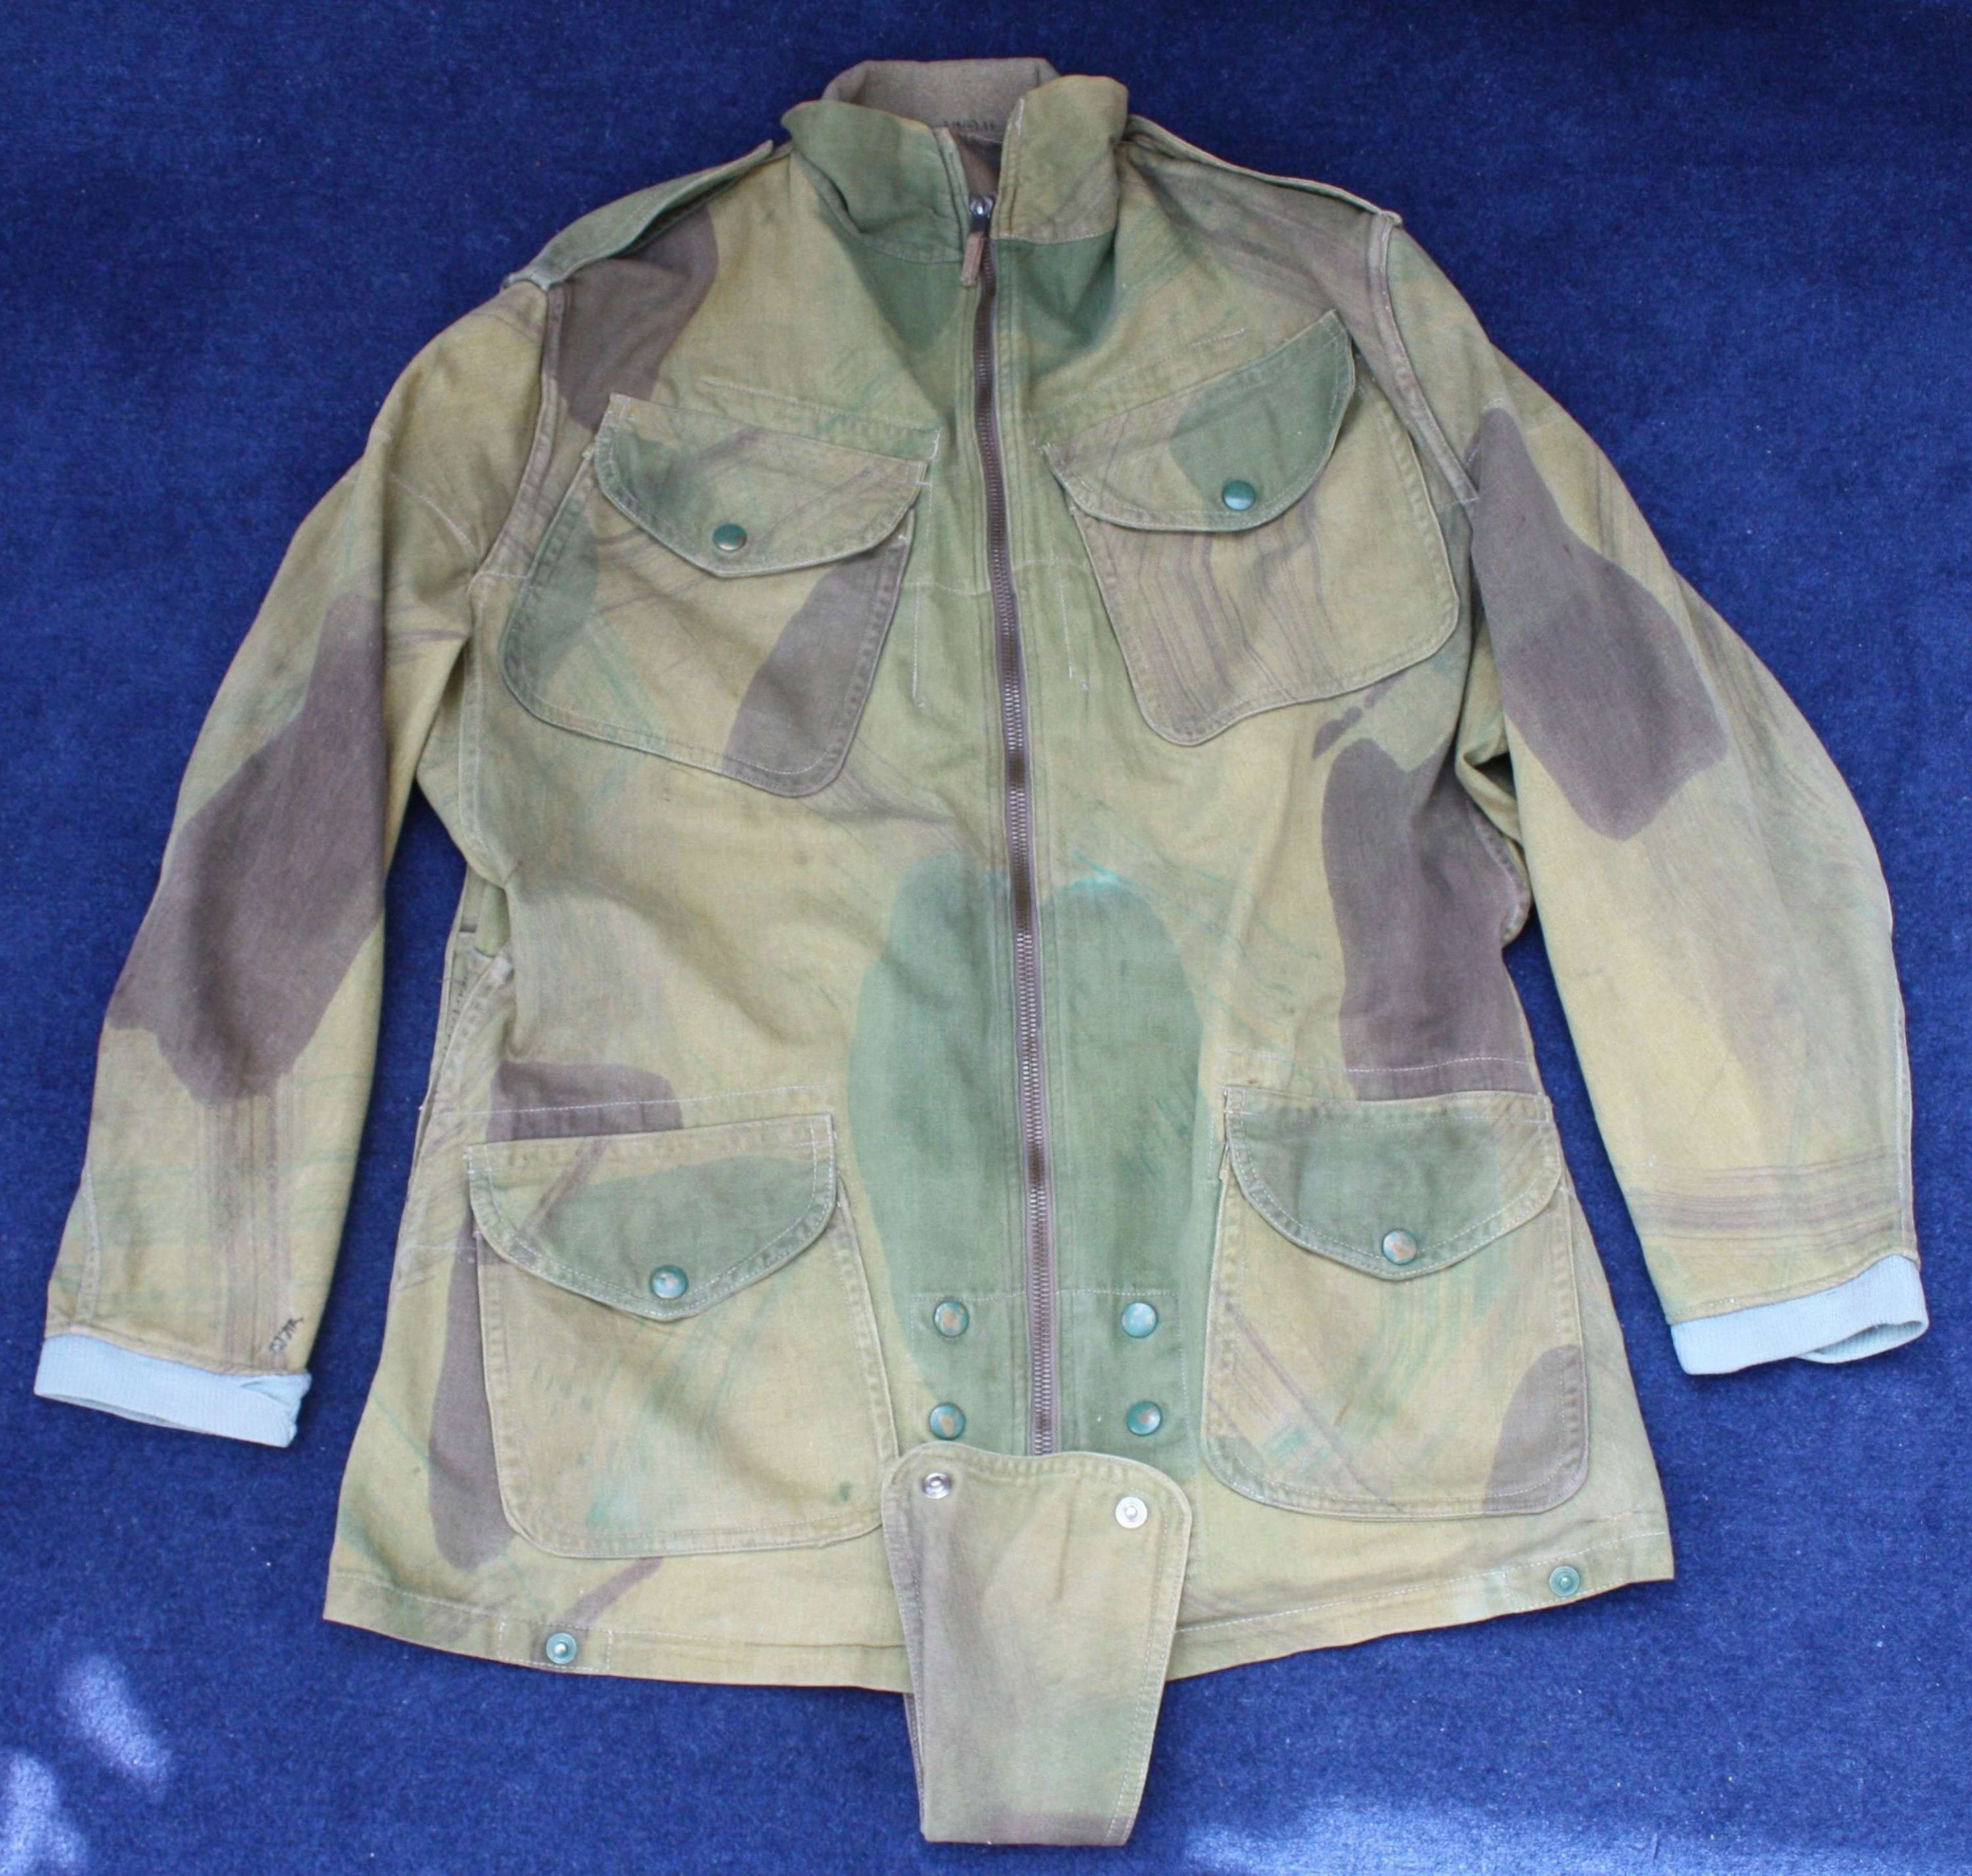 Post WW2 British Denison Smock worn by Parachutists & Special Forces